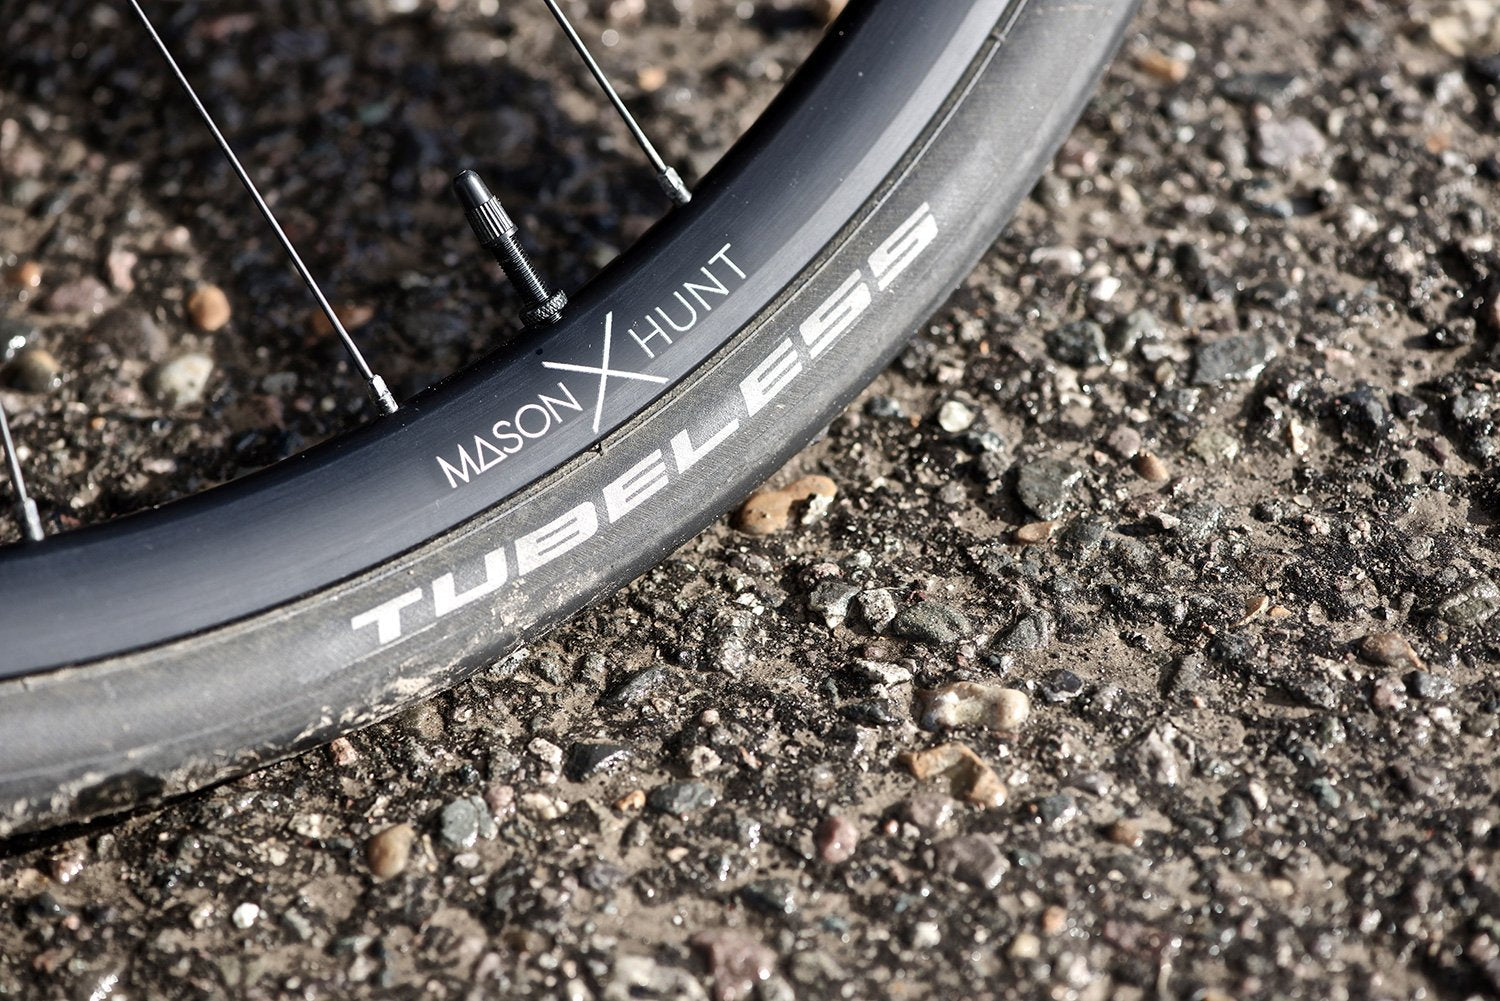 <html><h1>Tyres</h1><i>At HUNT, we enjoy the puncture resistance and grip benefits of tubeless on our every-day rides so we wanted to allow our customers the same option. Of course, all of our tubeless-ready wheels are designed to work perfectly with clincher tyres and inner tubes too.</i></html>